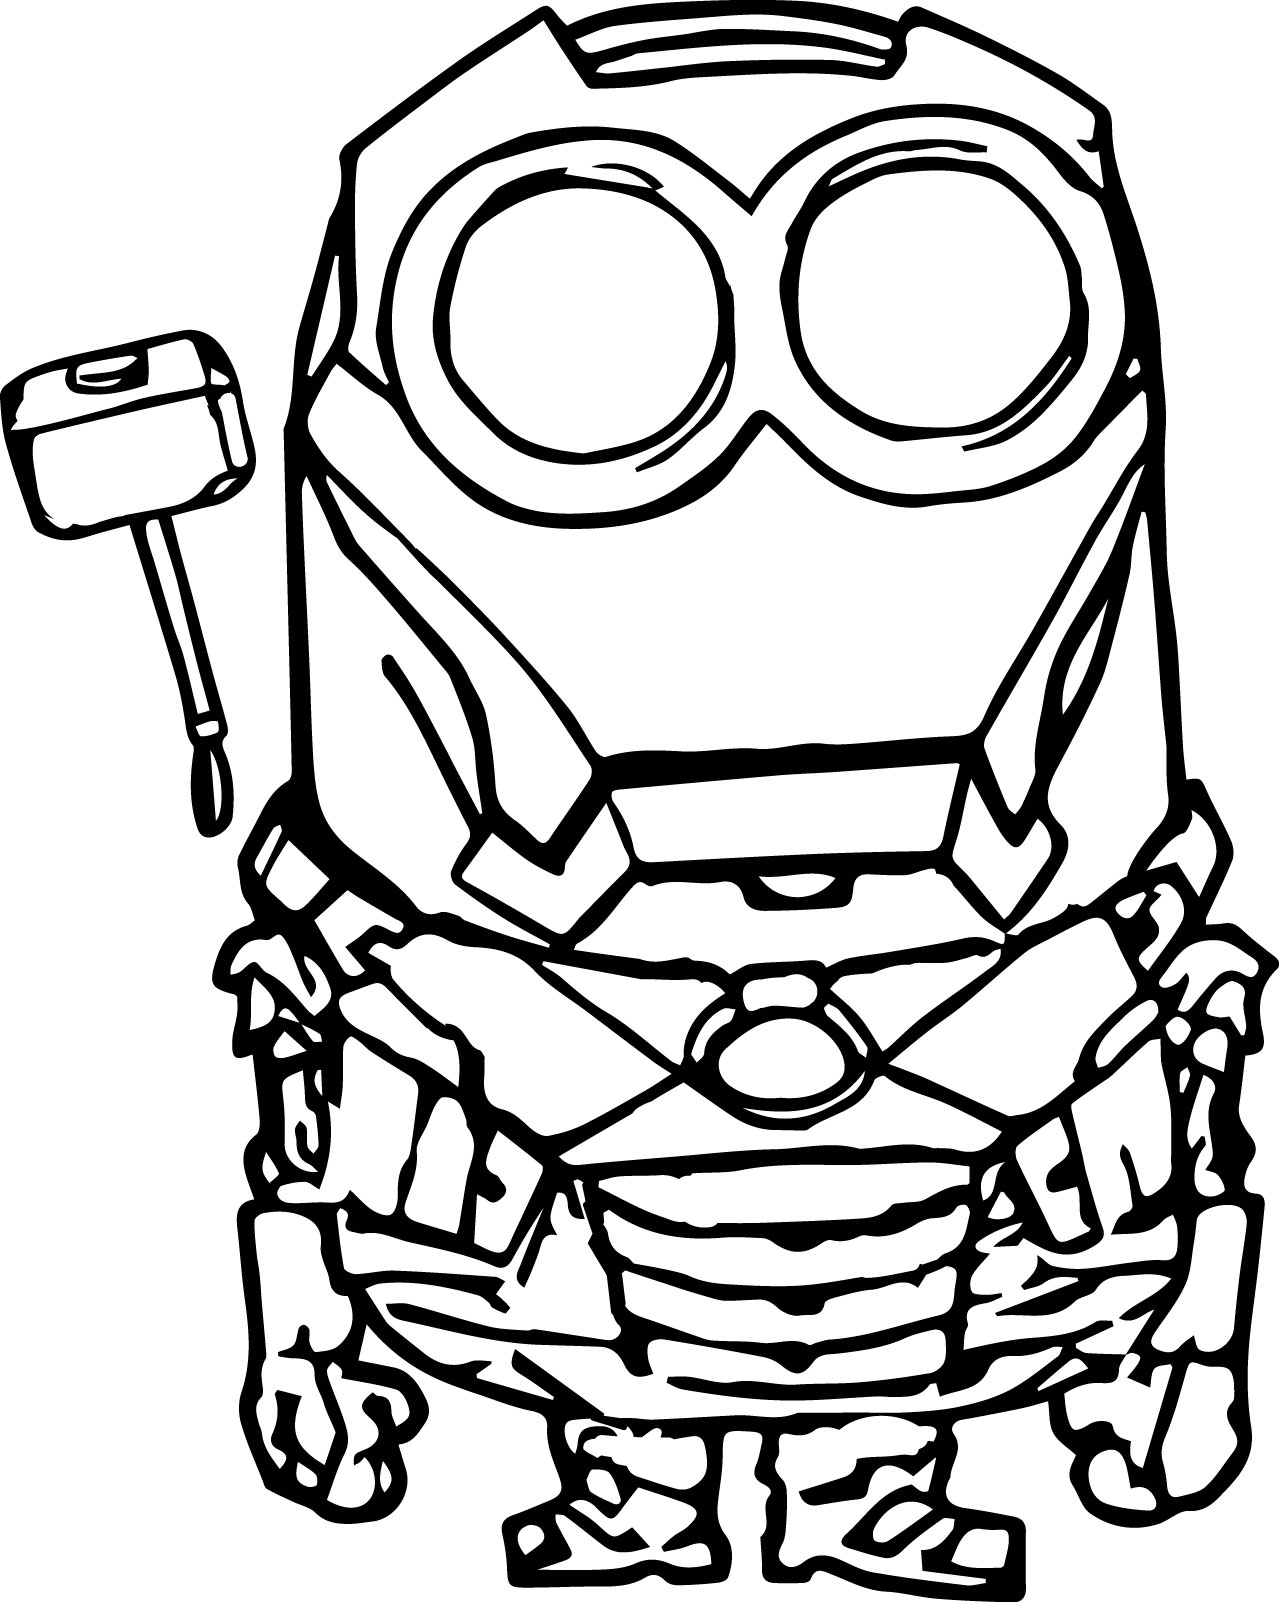 Minion Coloring Pages | Free download on ClipArtMag